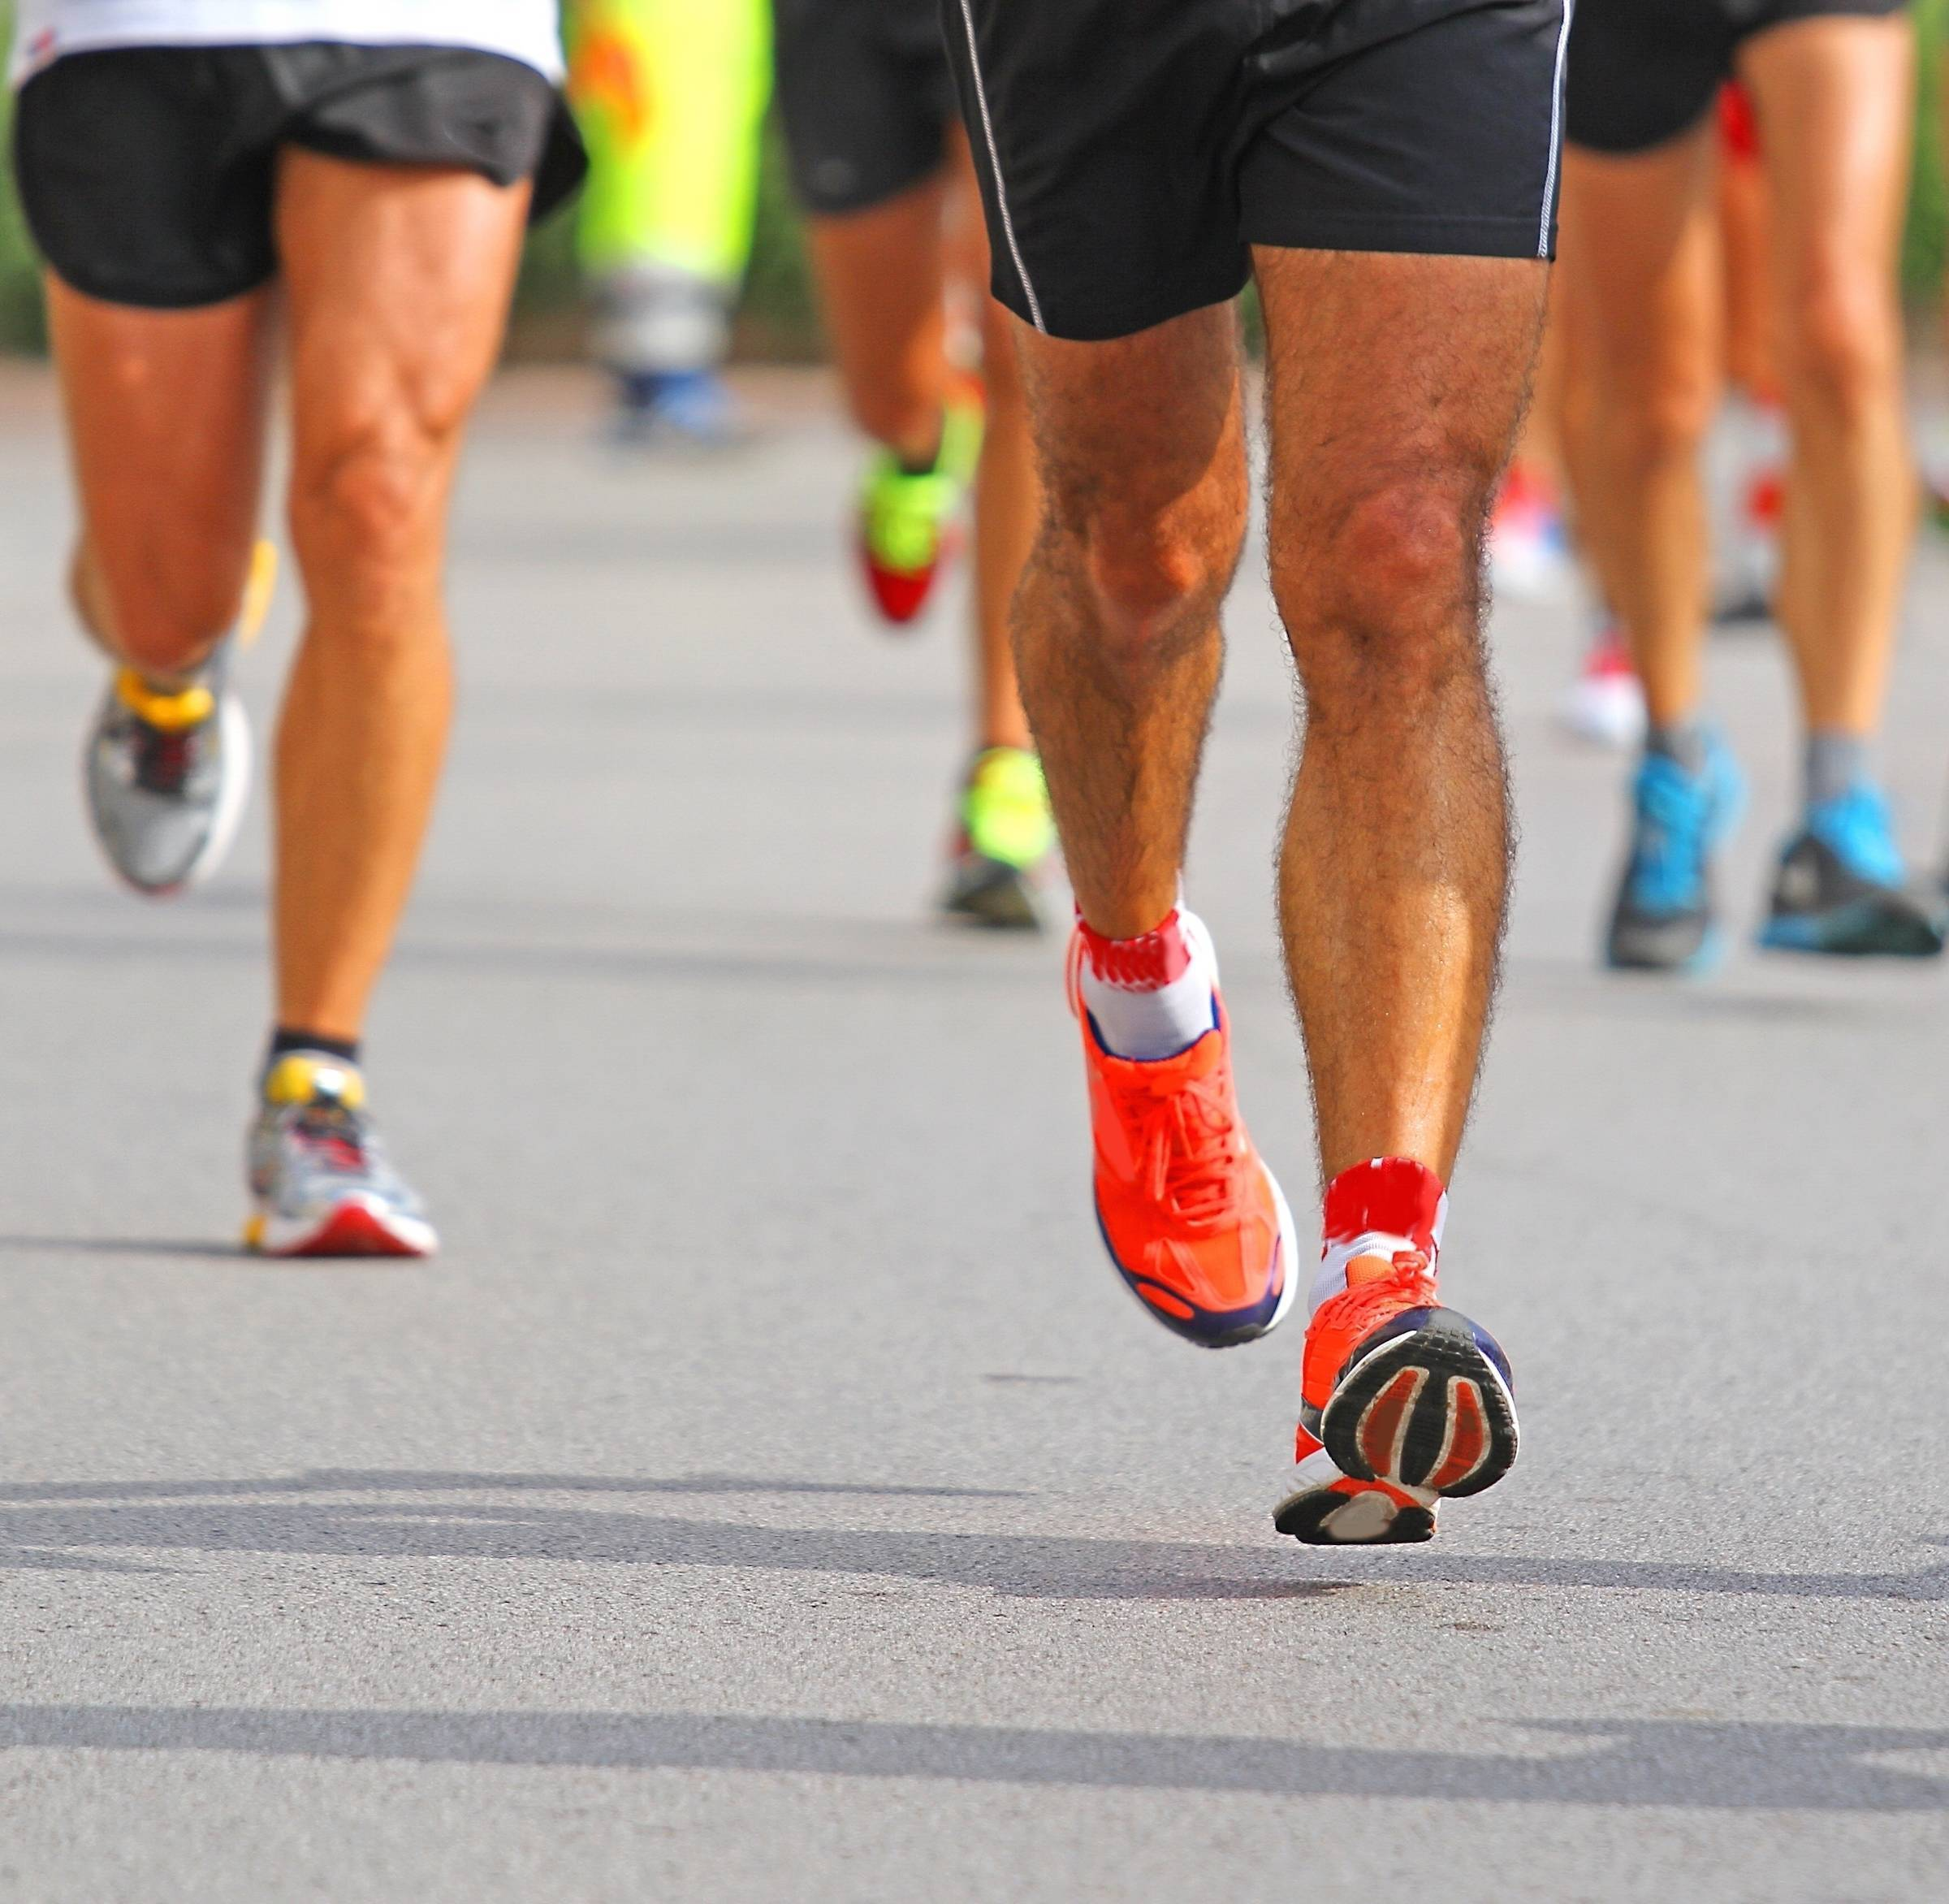 Registration Opens this Week for 2019 Nutley Chamber of Commerce 5K